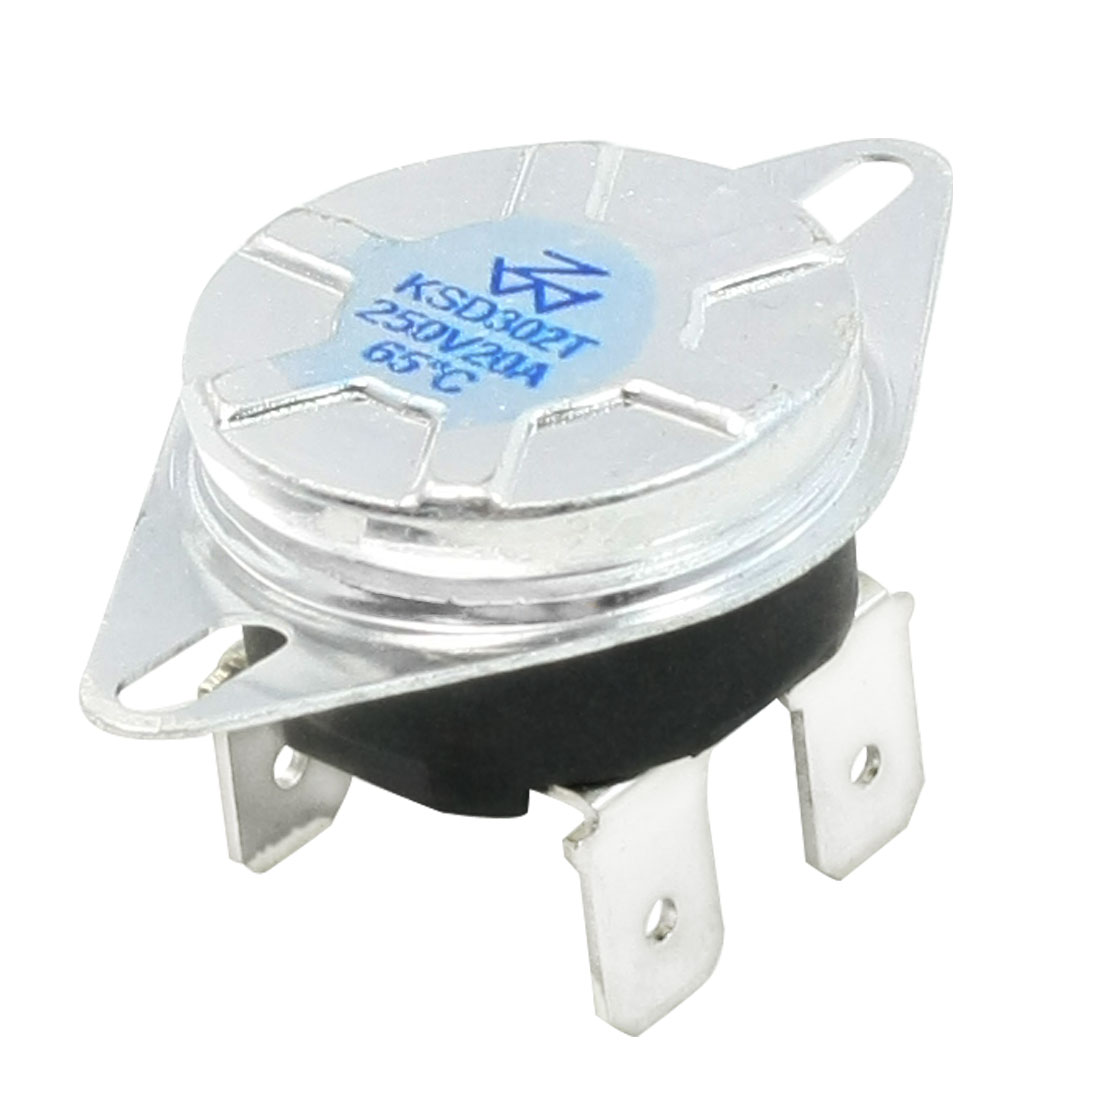 AC 250V 20A N/C 4 Pin Terminals 65C Temperature Control Switch Thermostat